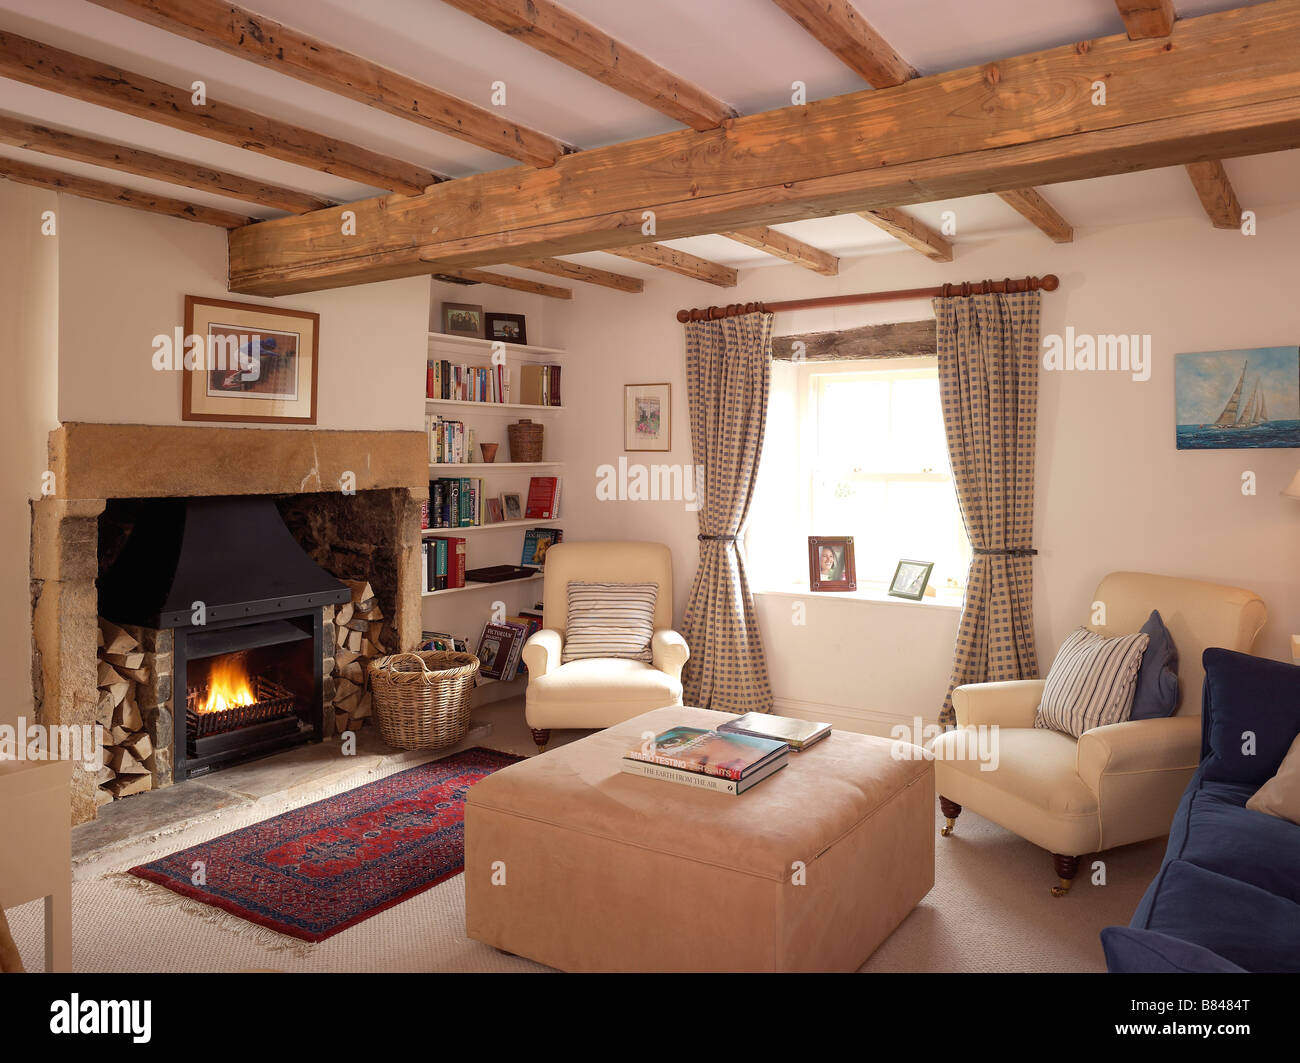 Country Style Living Room Stockfotos & Country Style Living ...